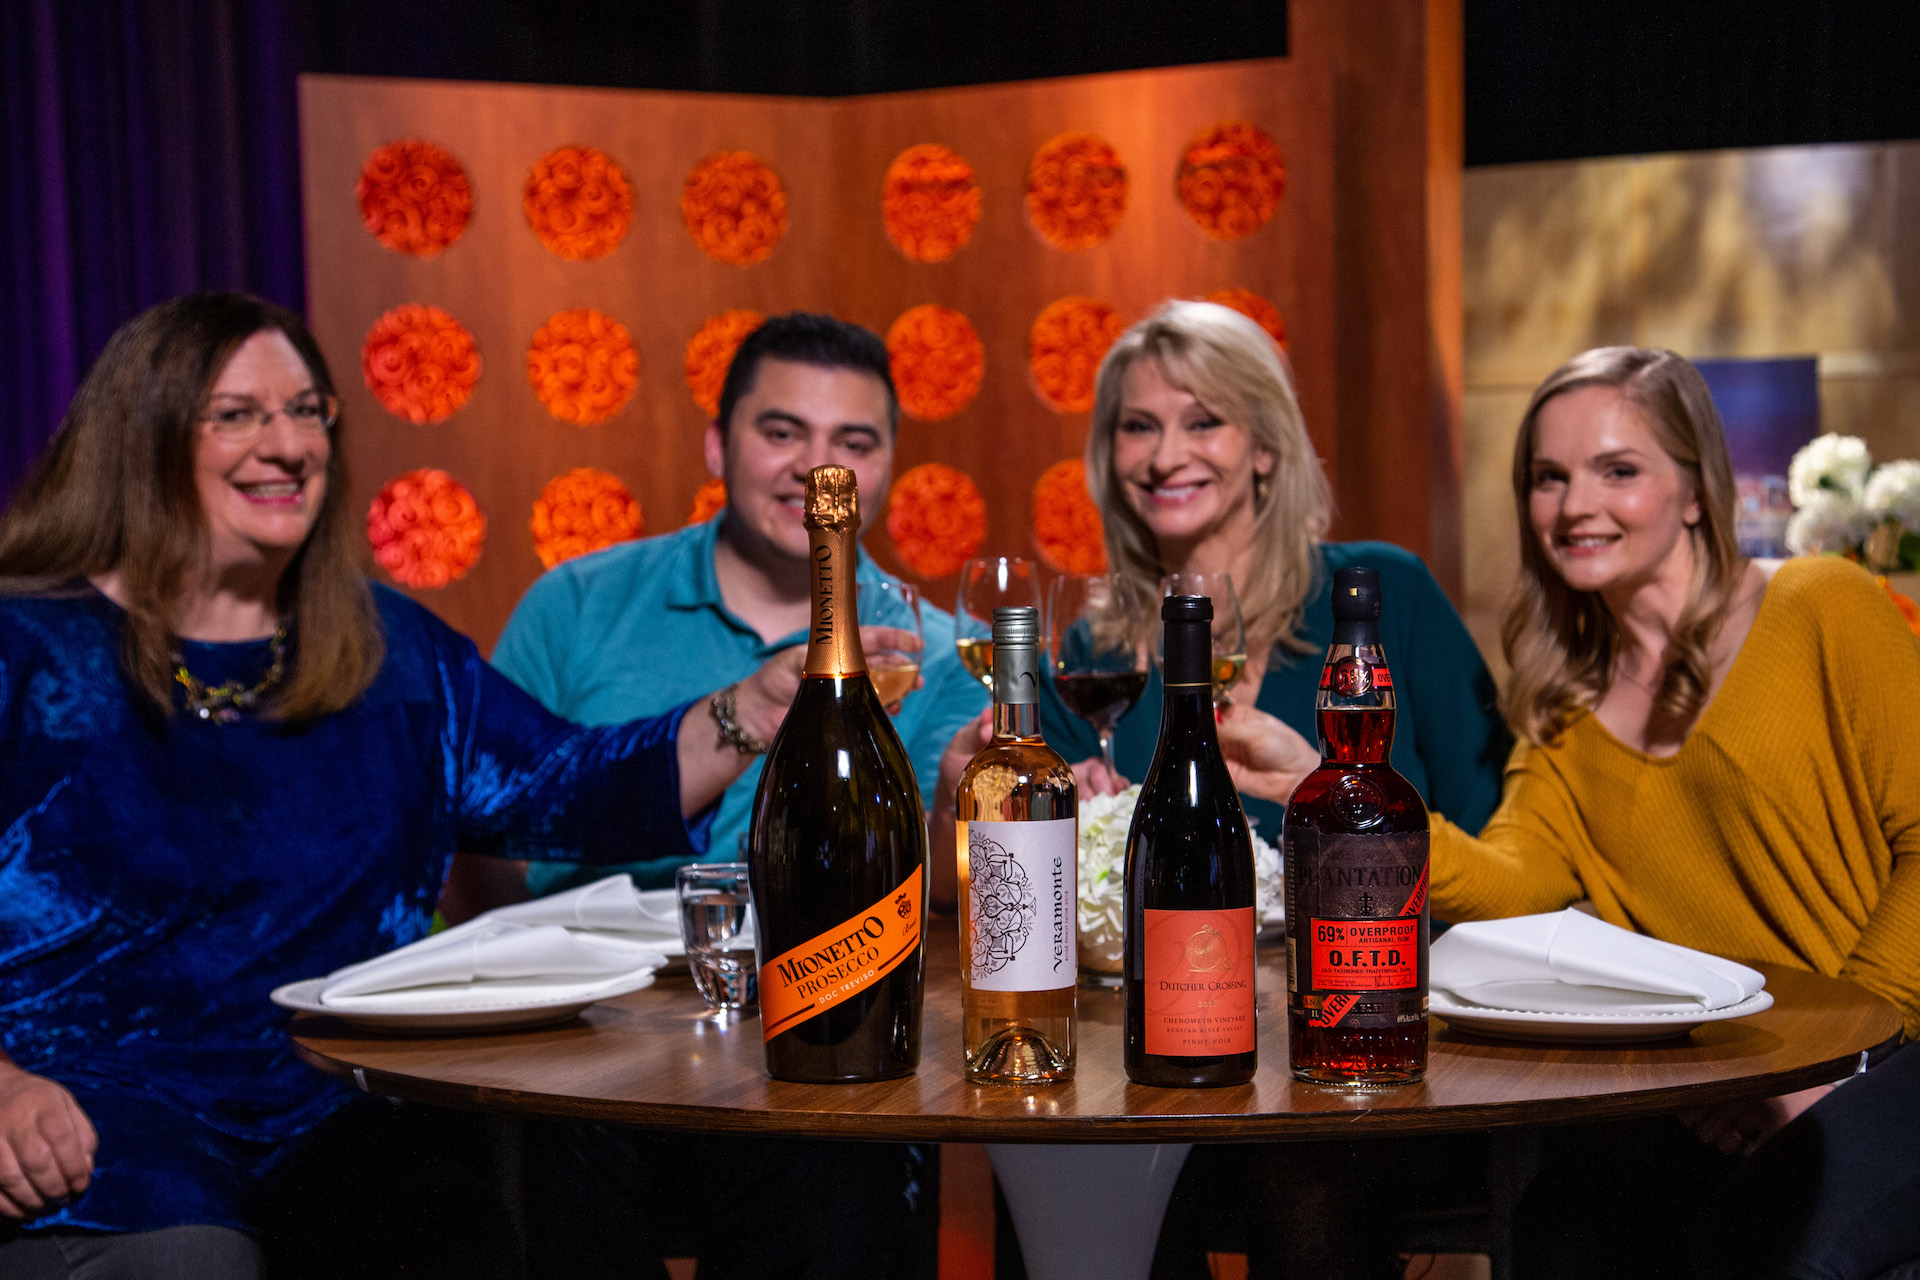 Wine and spirits that guests drank on the set of season 14 episode 4.